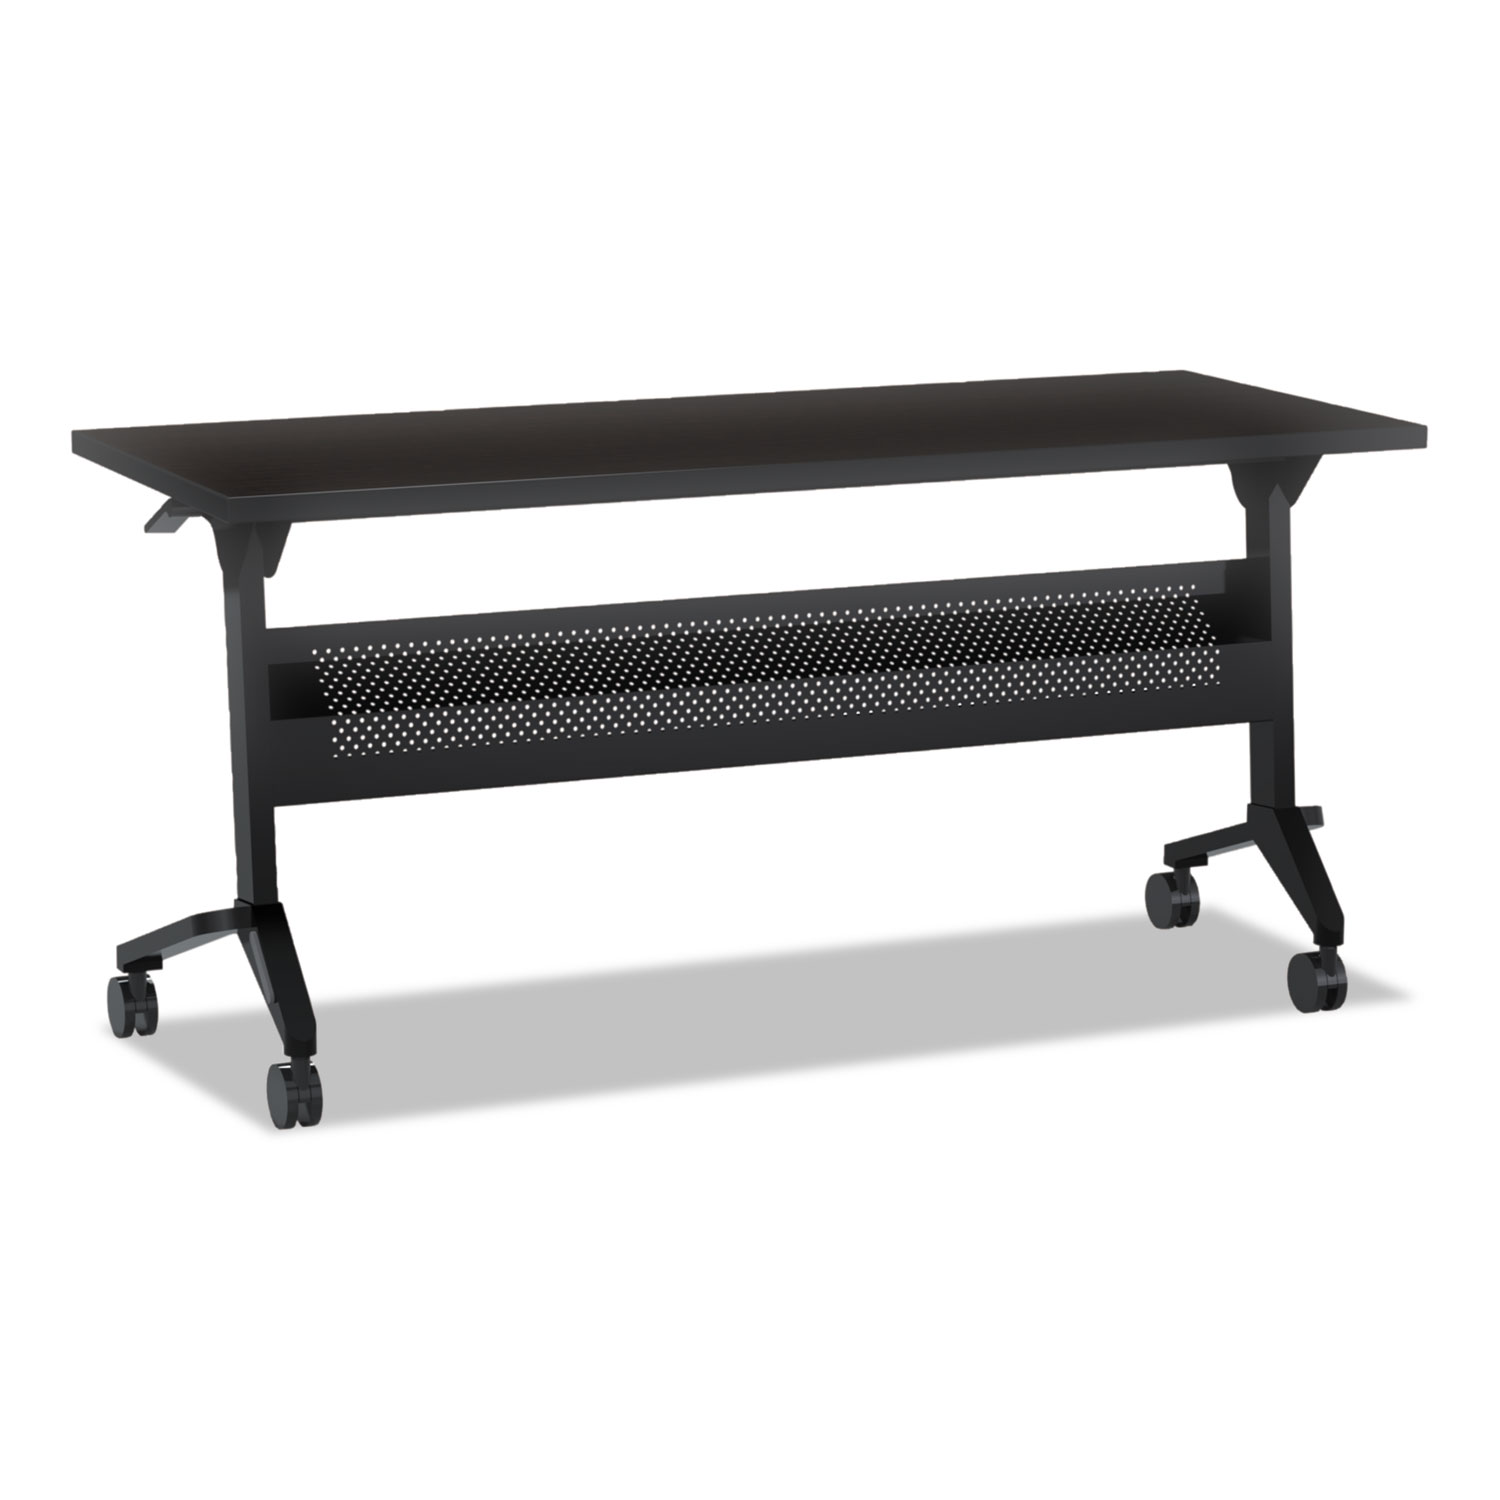 Flip-n-Go Table Top, 72w x 24d, Mocha